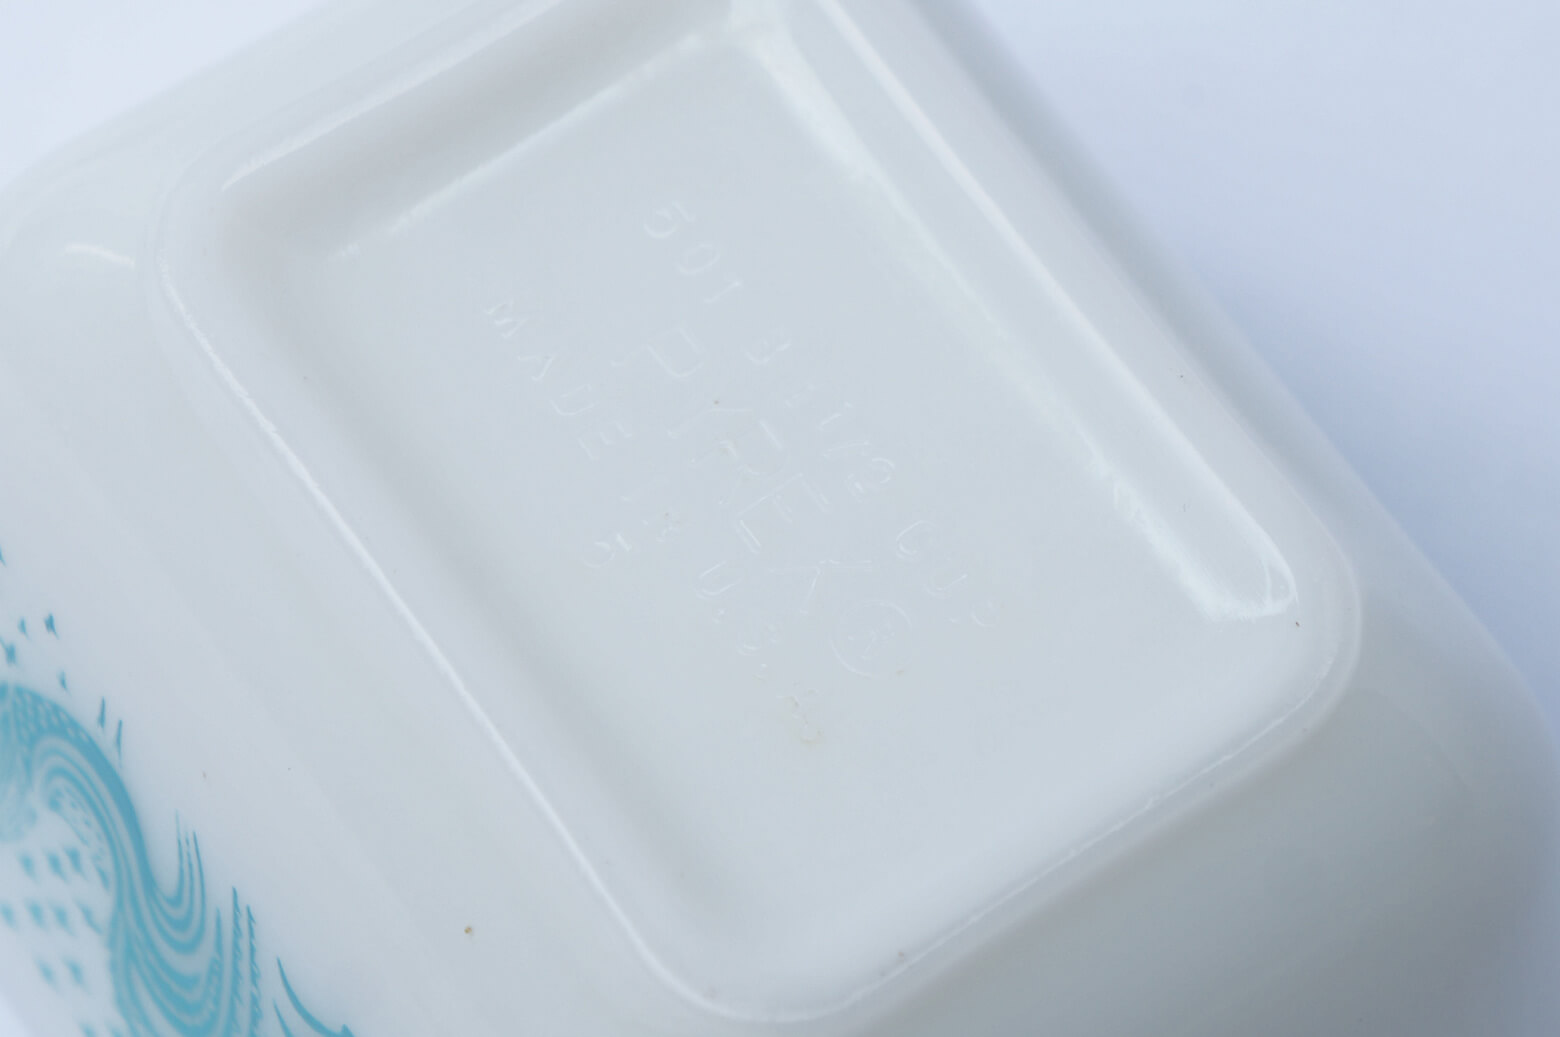 OLD PYREX BUTTER PRINT Refrigerator S size MADE IN USA / オールドパイレックス バター プリント レフリジレーター Sサイズ アメリカ製